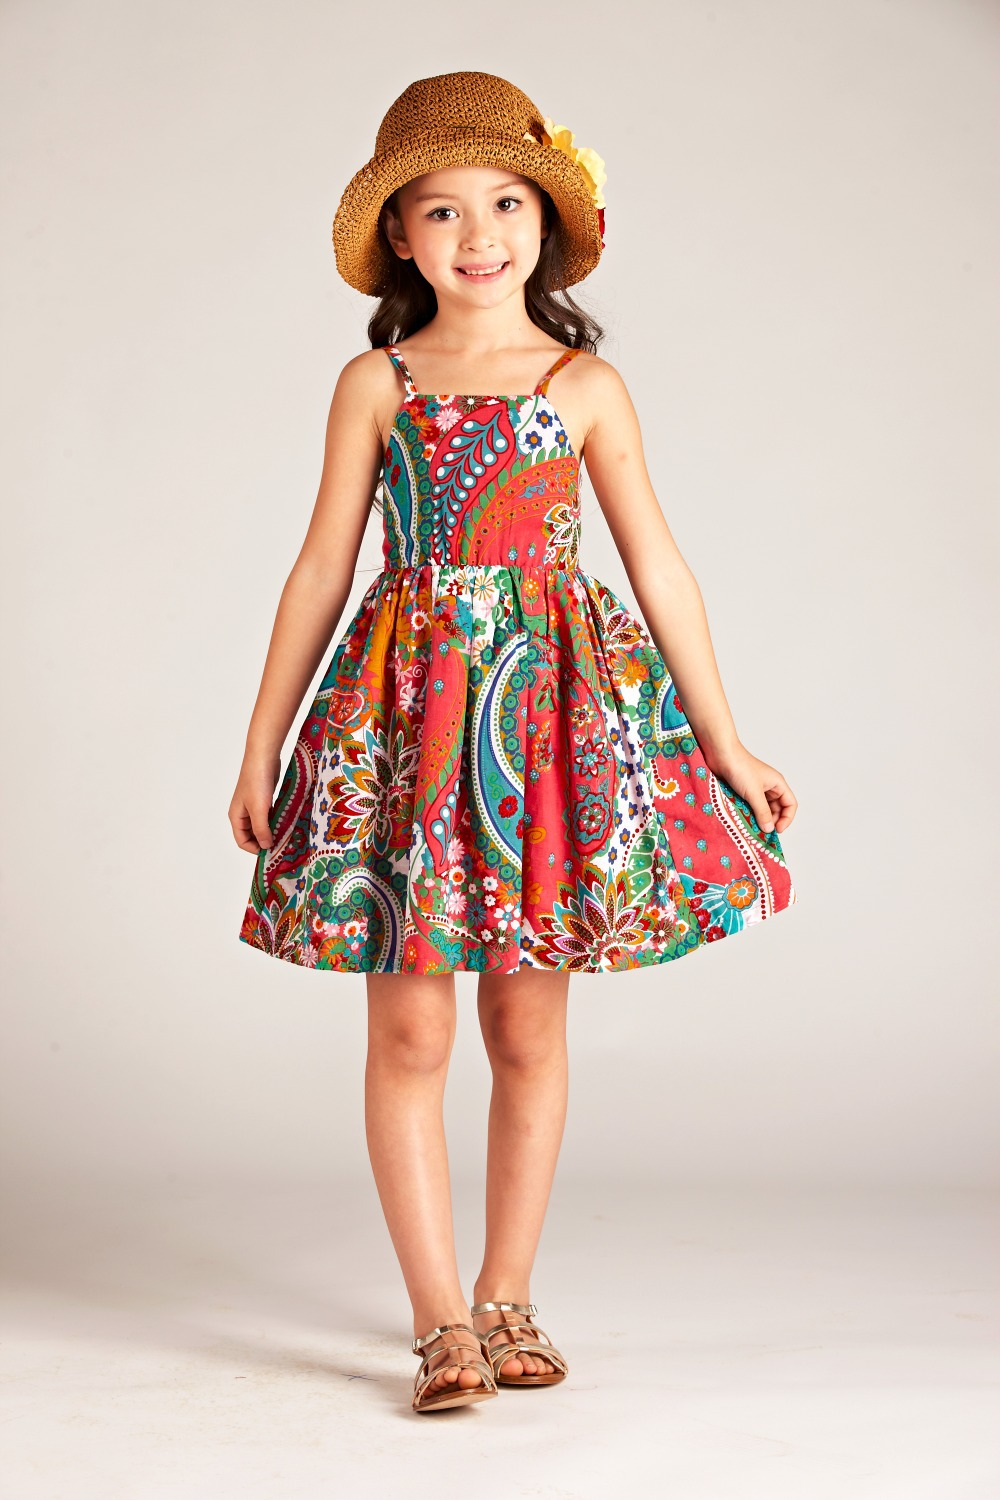 Discover stylish & trendy teen & junior size clothing at up to 70% off on zulily. Browse fashionable dresses, cute tops, & fun skirts all at a great price.